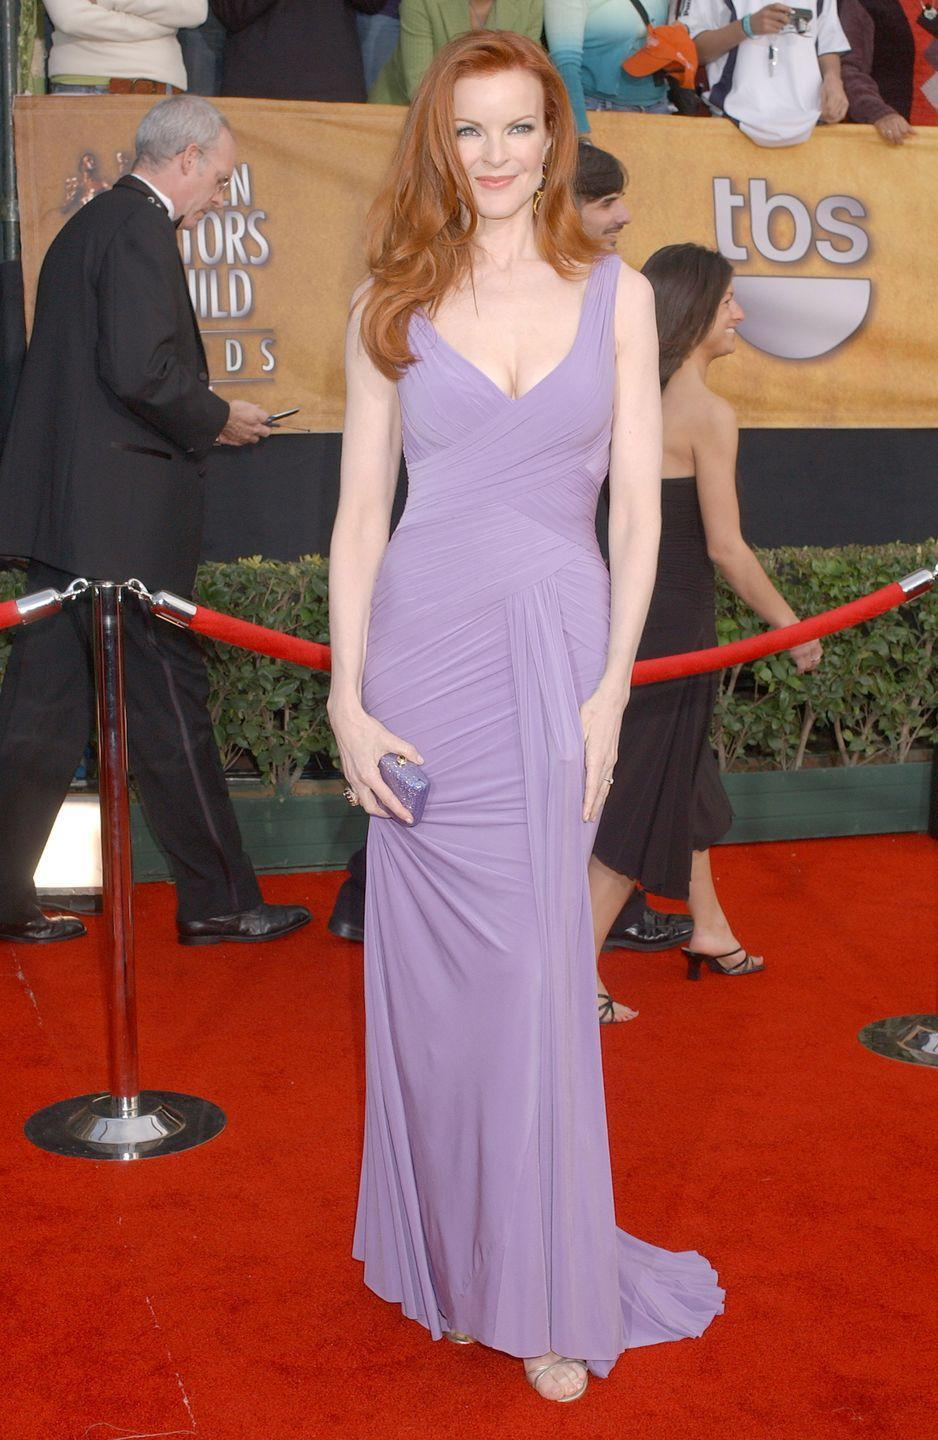 <p>Marcia Cross's wavy red hair and form-fitting lavender dress make her look a whole lot like Meg.</p>